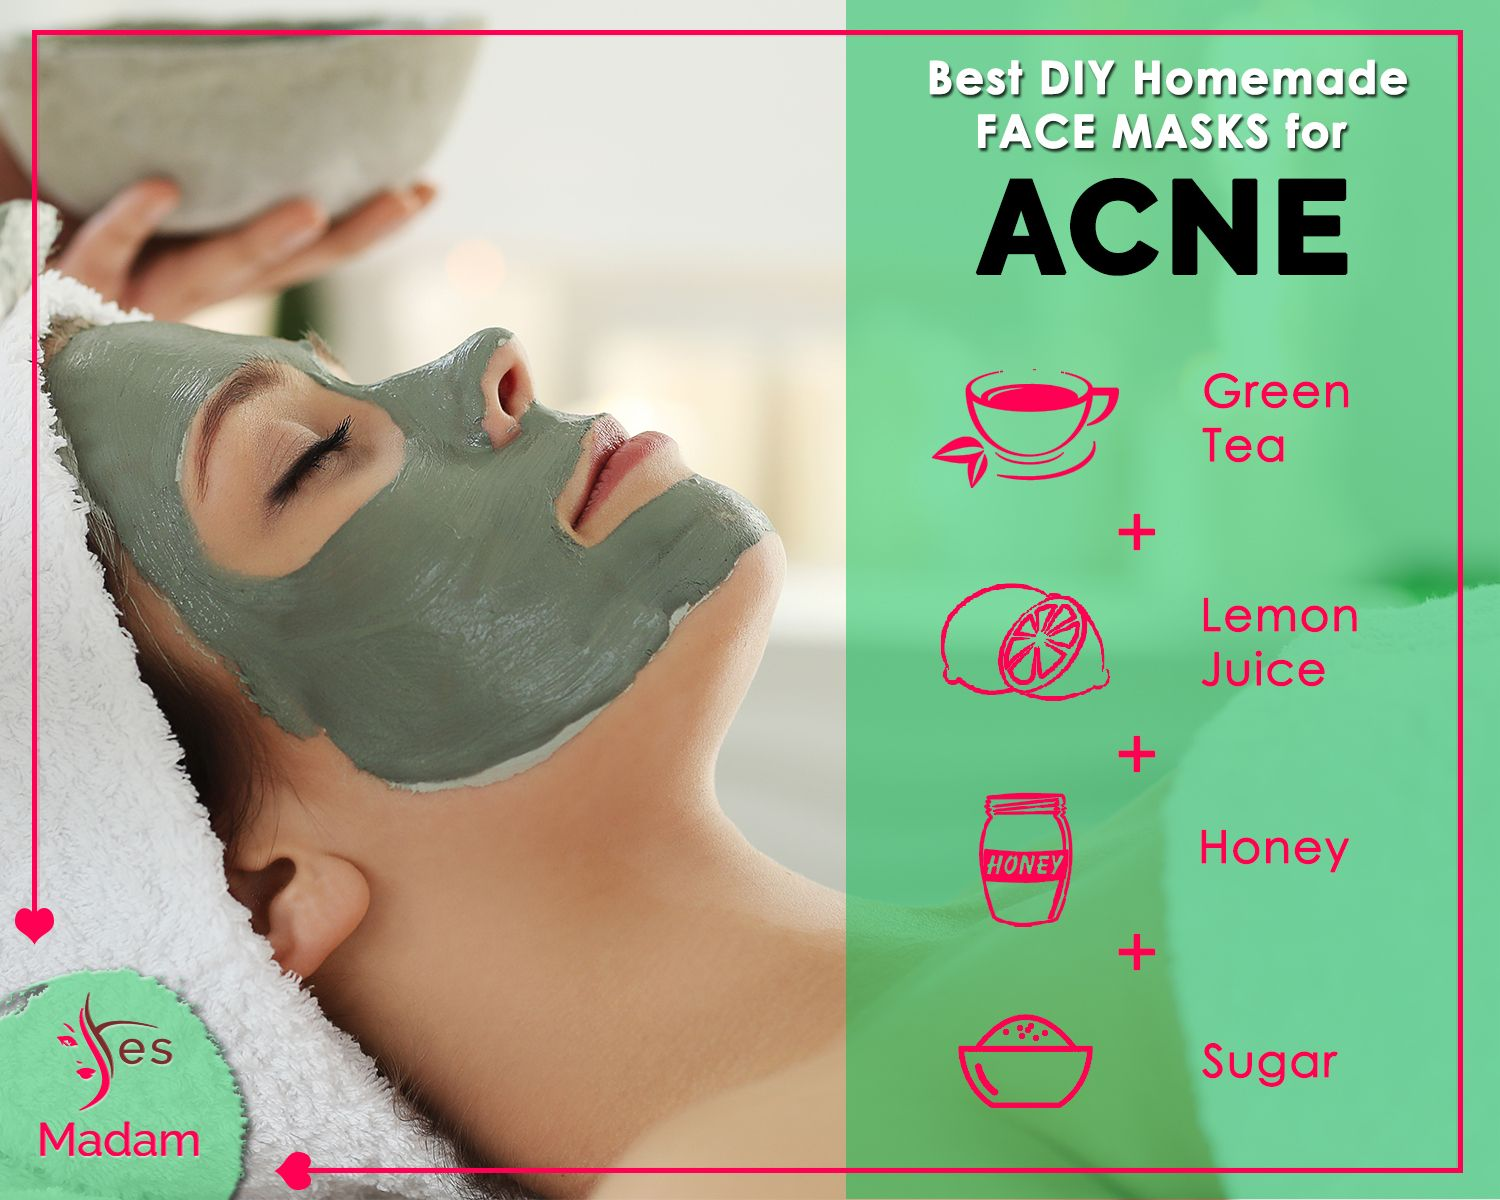 Best DIY Homemade FaceMask for Acne Mix all the